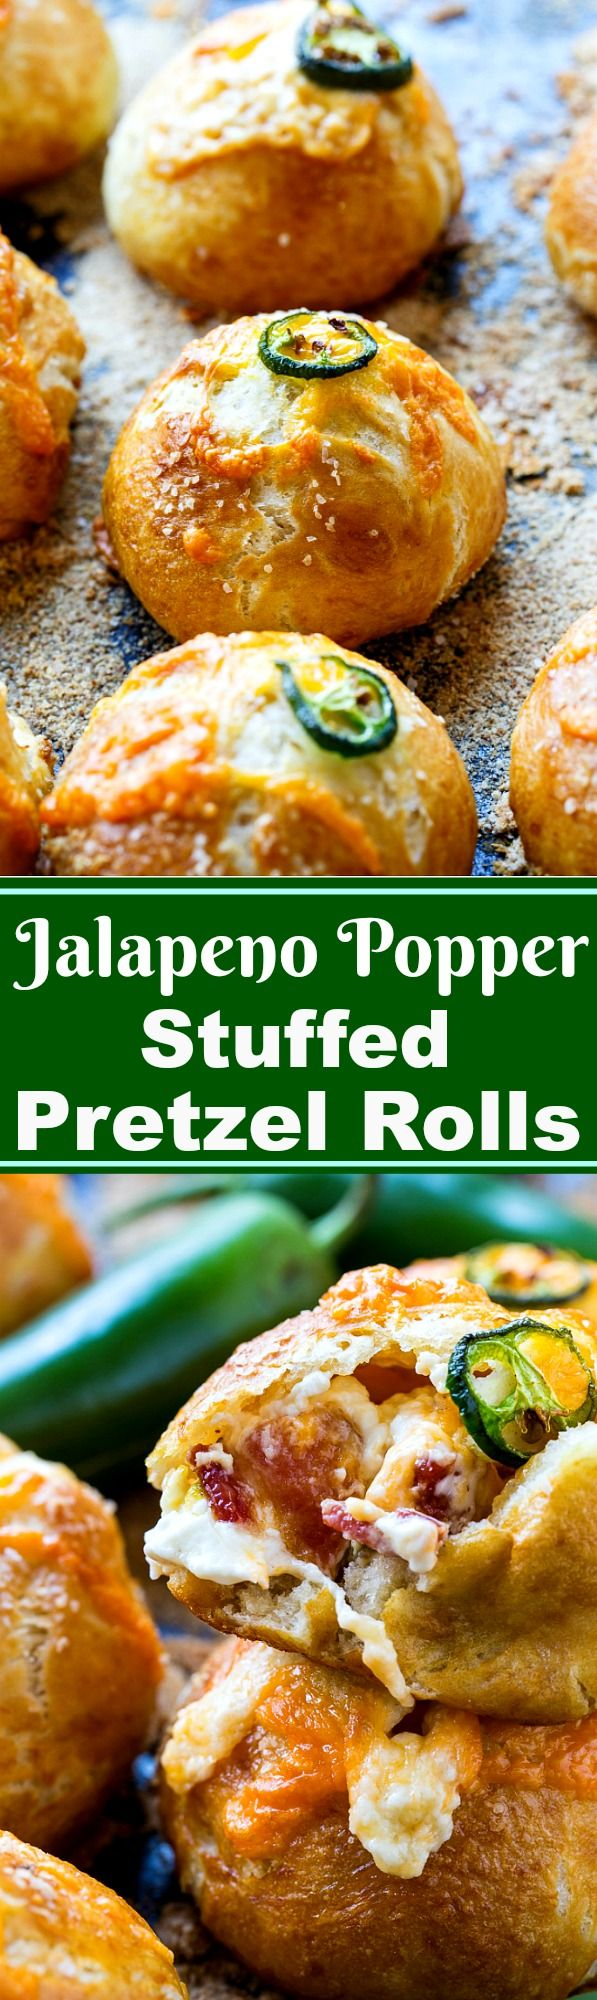 Jalapeno Popper Pretzel Rolls make a great game day food.